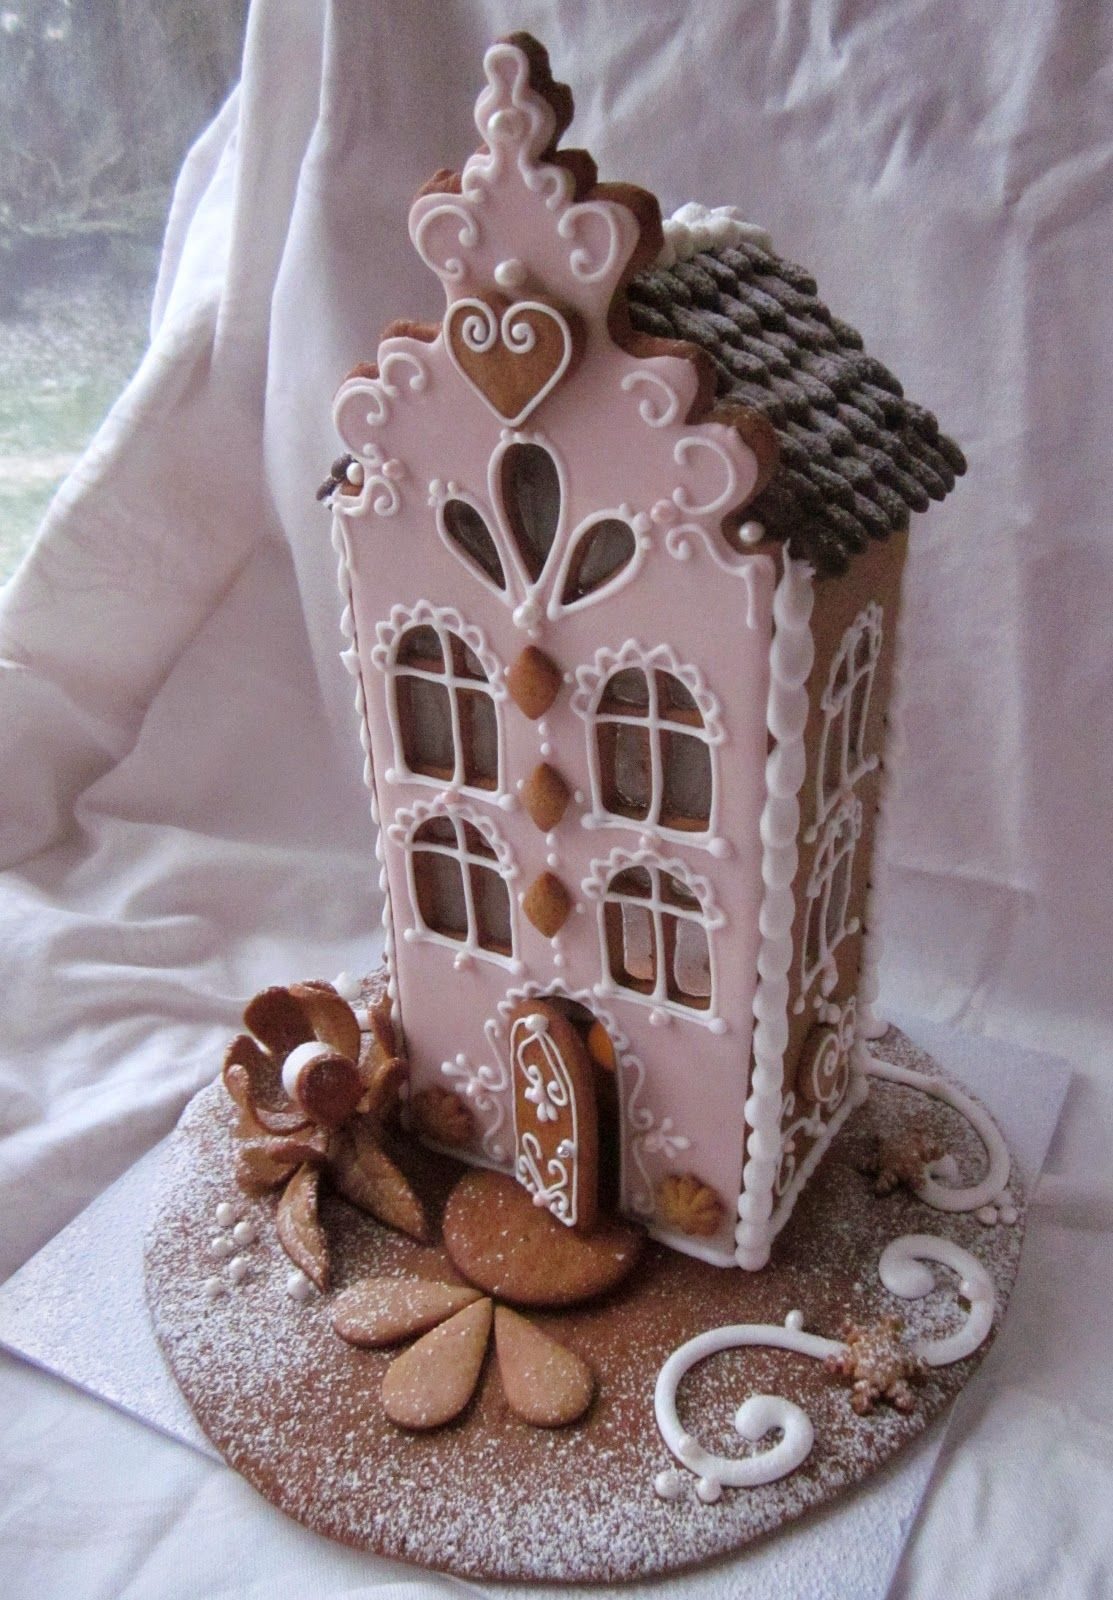 GINGERBREAD HOUSE~PINK GINGERBREAD HOUSE